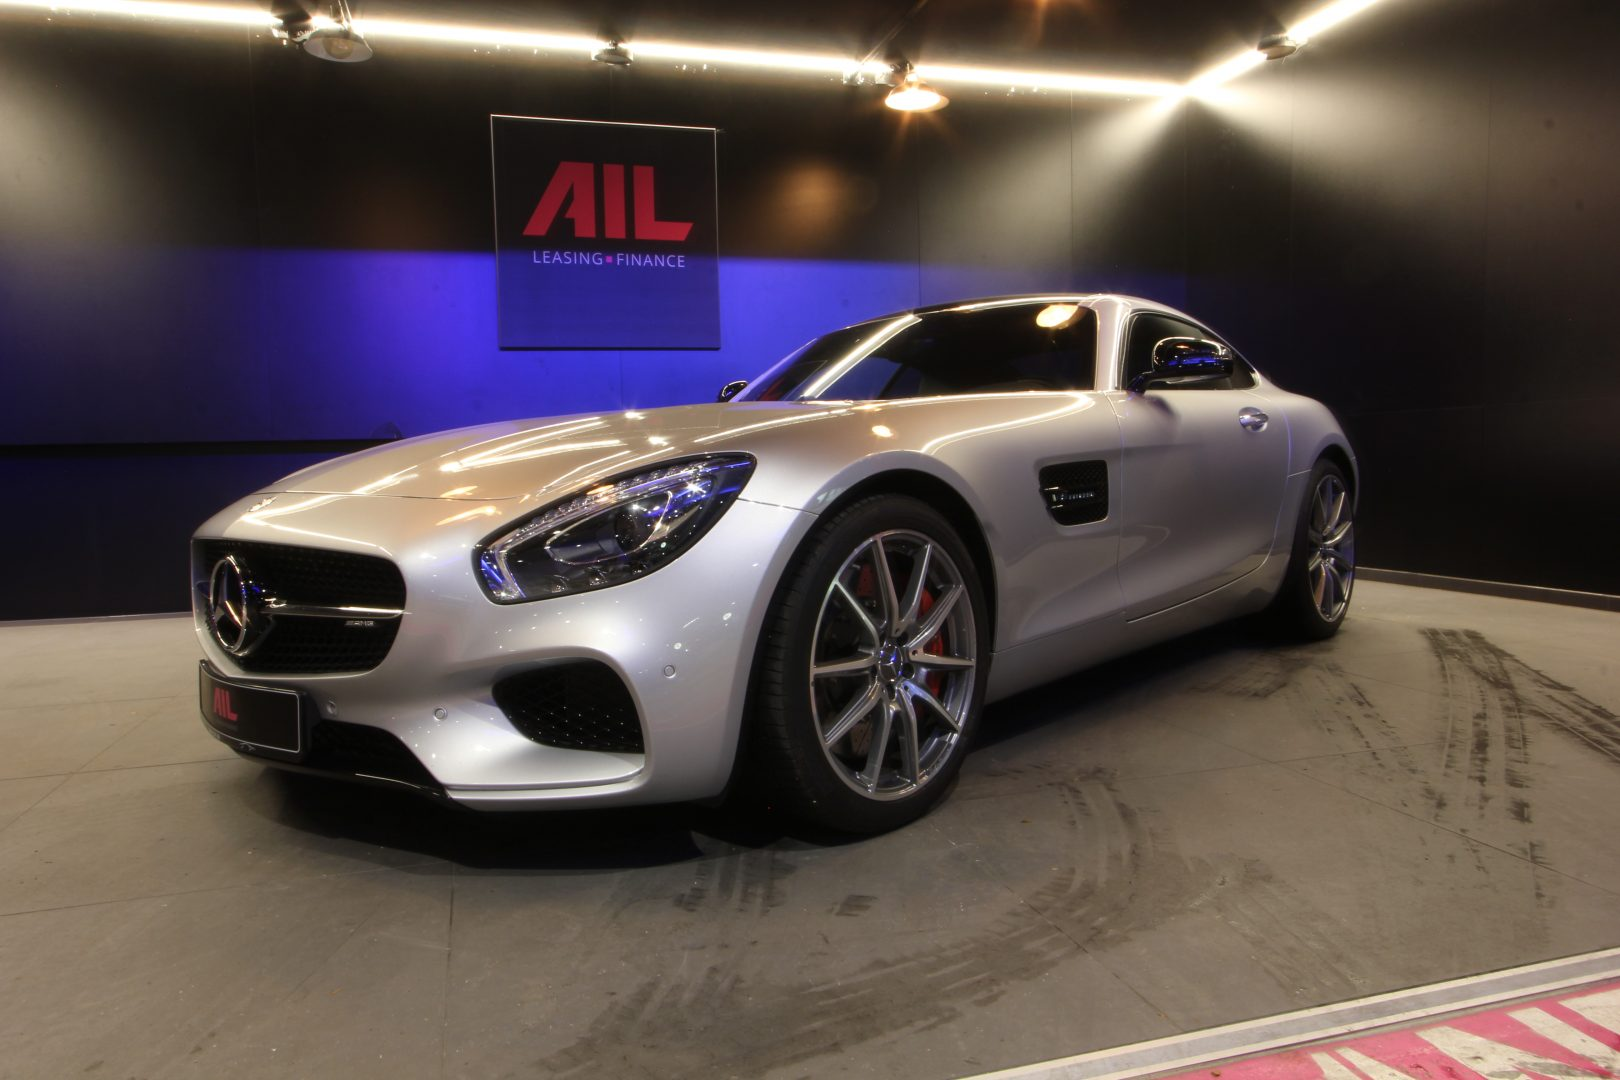 AIL Mercedes-Benz AMG GT S Coupe 10